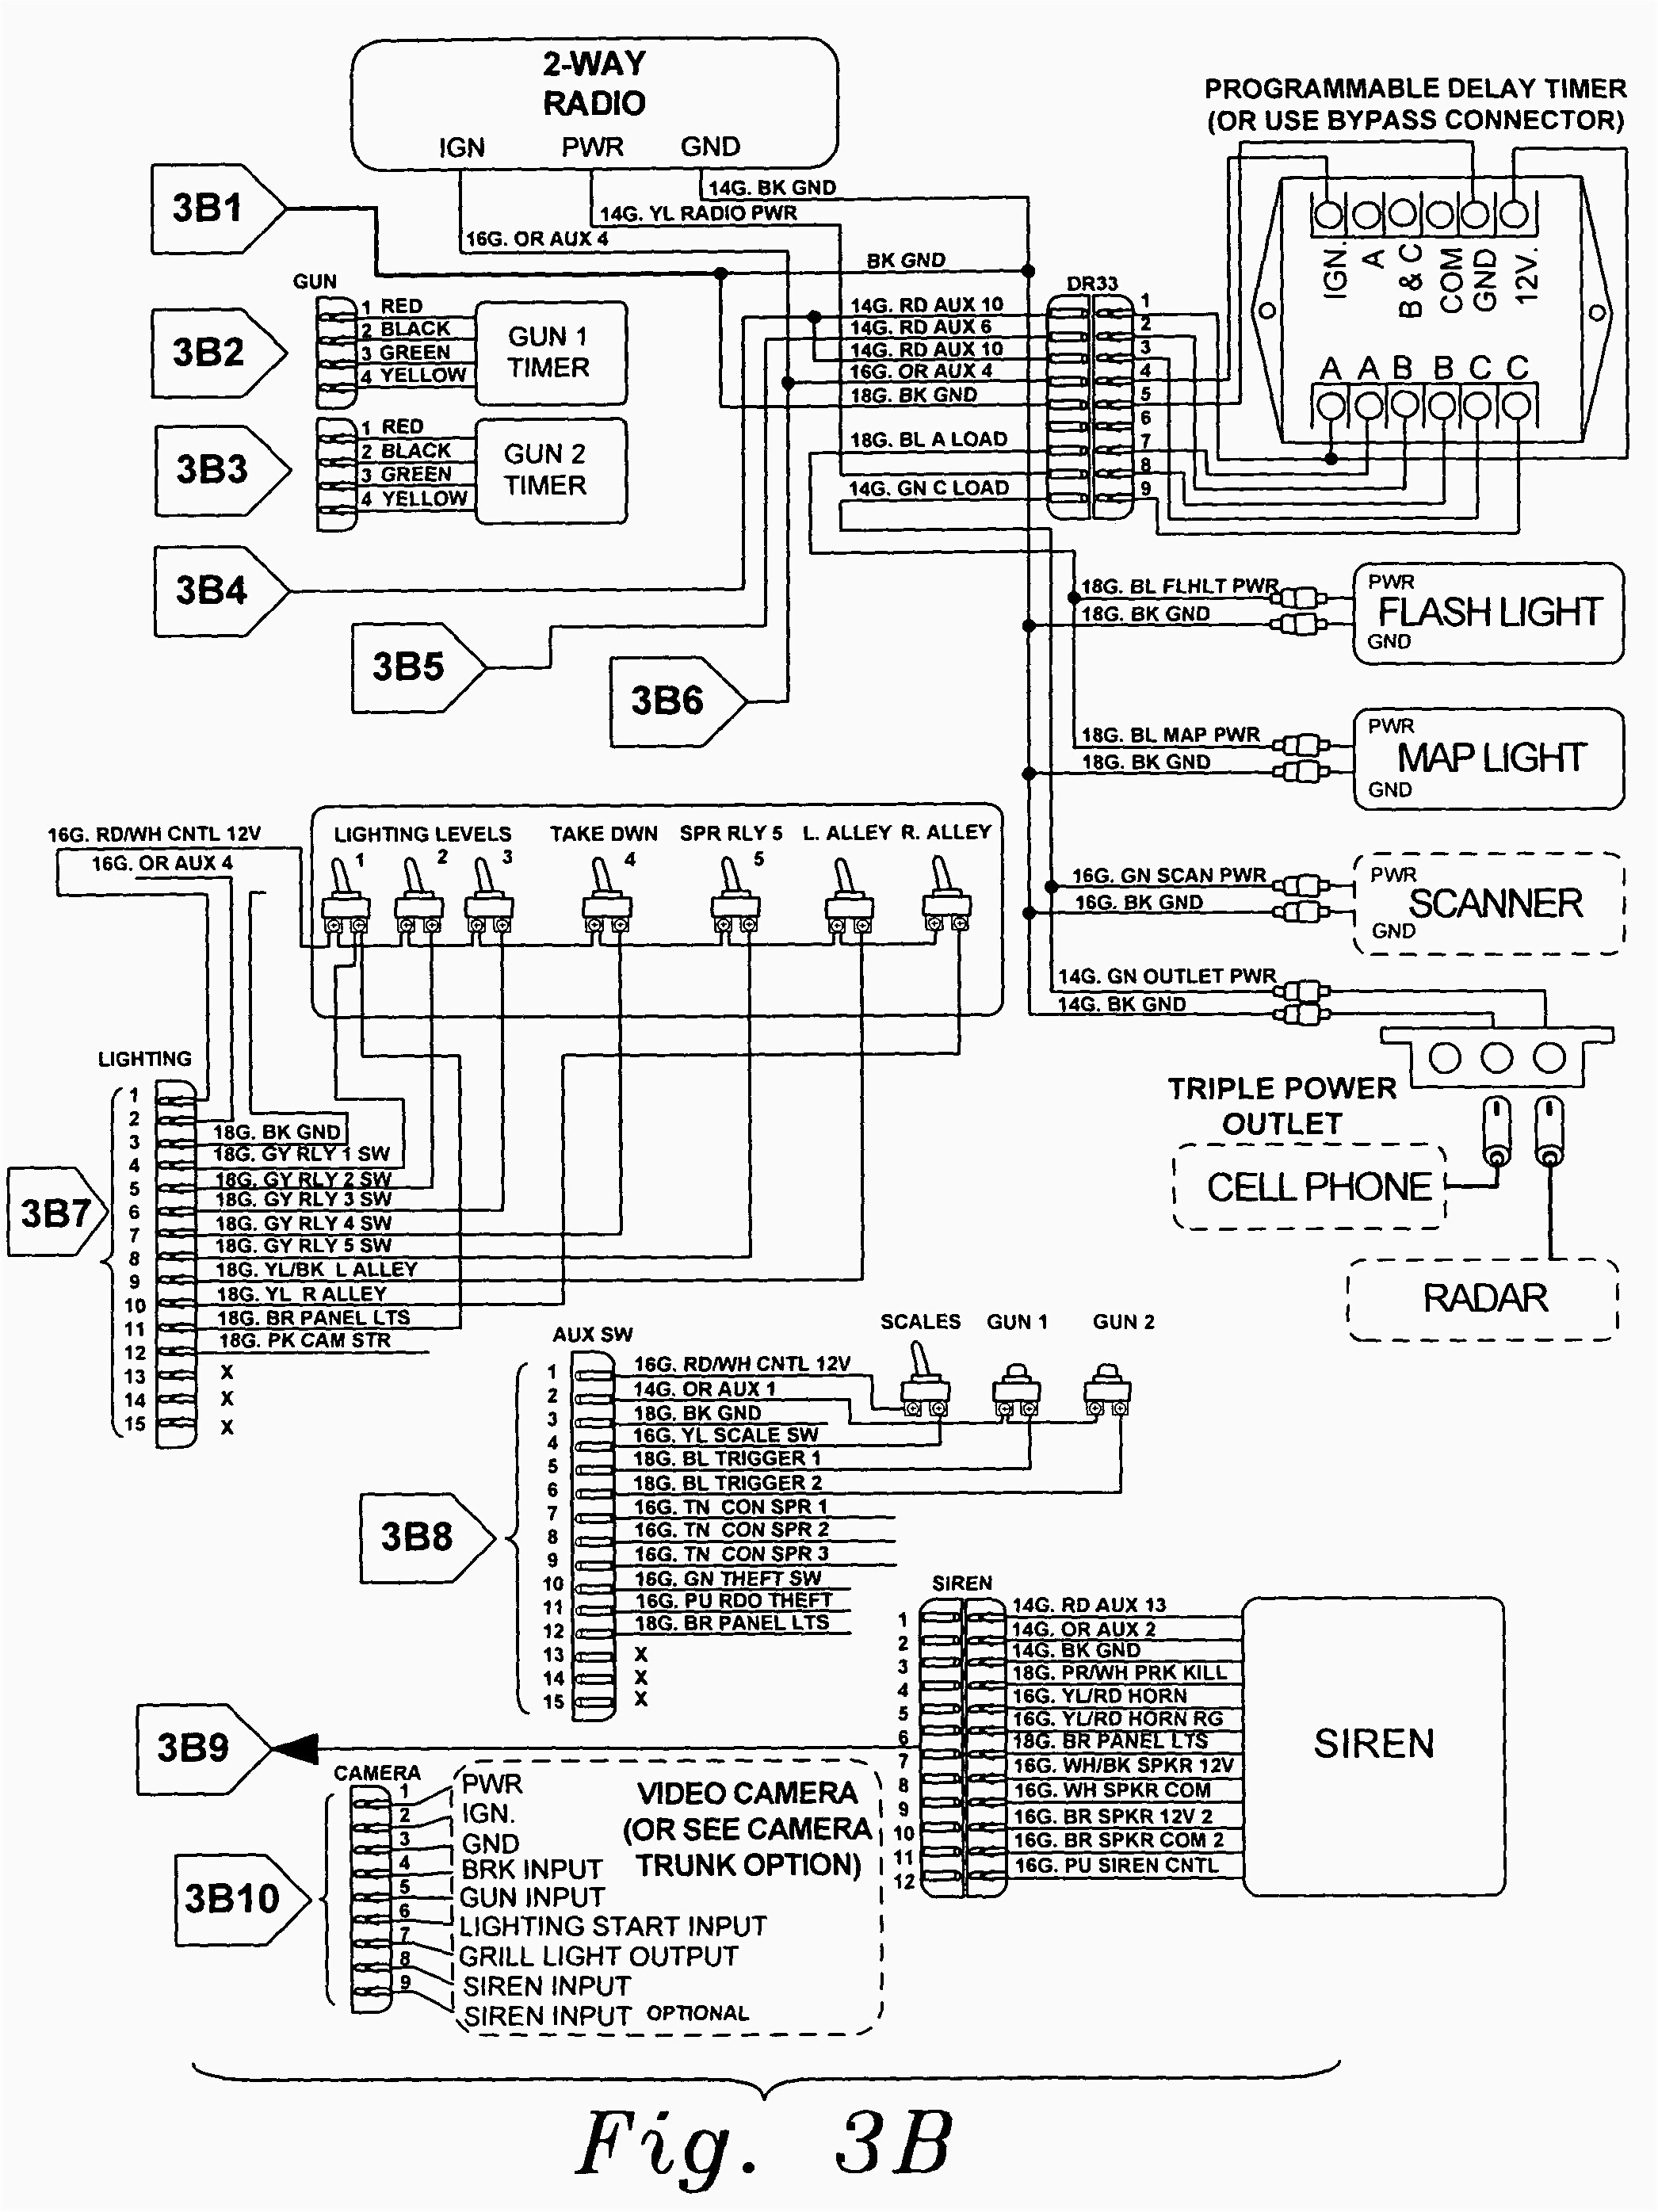 Whelen Strobe Light Wiring Diagram - Switchable Pre Amp Wiring Harness  Diagram - fusebox.1997wir.jeanjaures37.fr | Whelen Linear Strobe Wiring Diagram |  | Wiring Diagram Resource